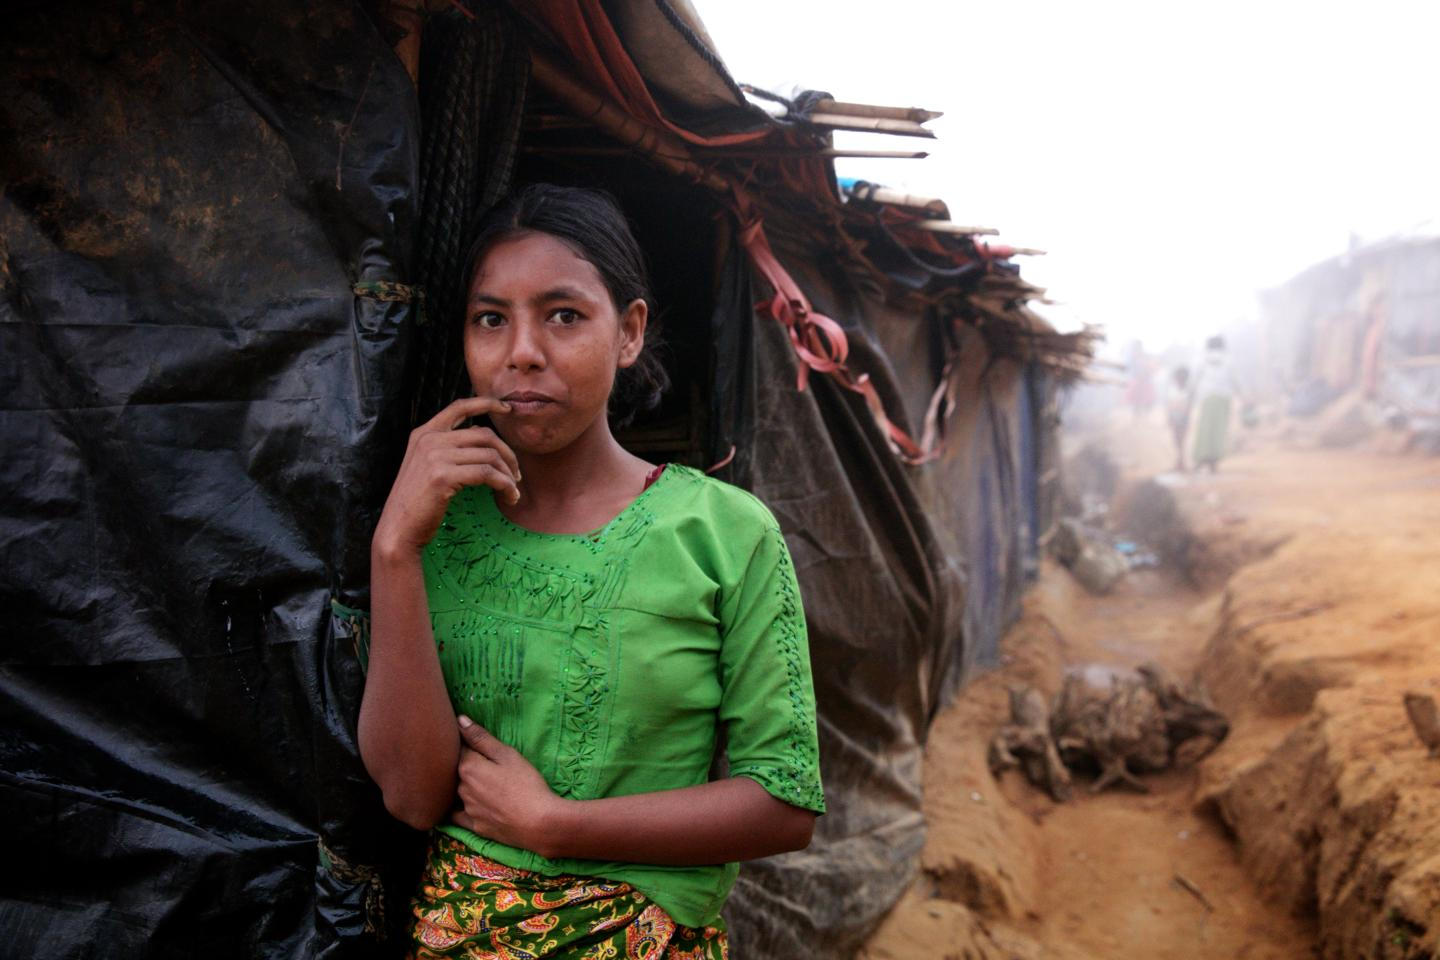 On 19 December 2017 in Bangladesh, Noor Bar, 12, stands outside her family's shelter before heading out to chop kindling in a jungle area located quite a distance from the Balukhali makeshift settlement for Rohingya refugees where her family lives, in Cox's Bazar district.  By 20 December 2017, an estimated 655,000 Rohingya refugees had entered Bangladesh to escape the recent escalation of violence against them in Rakhine State in Myanmar.